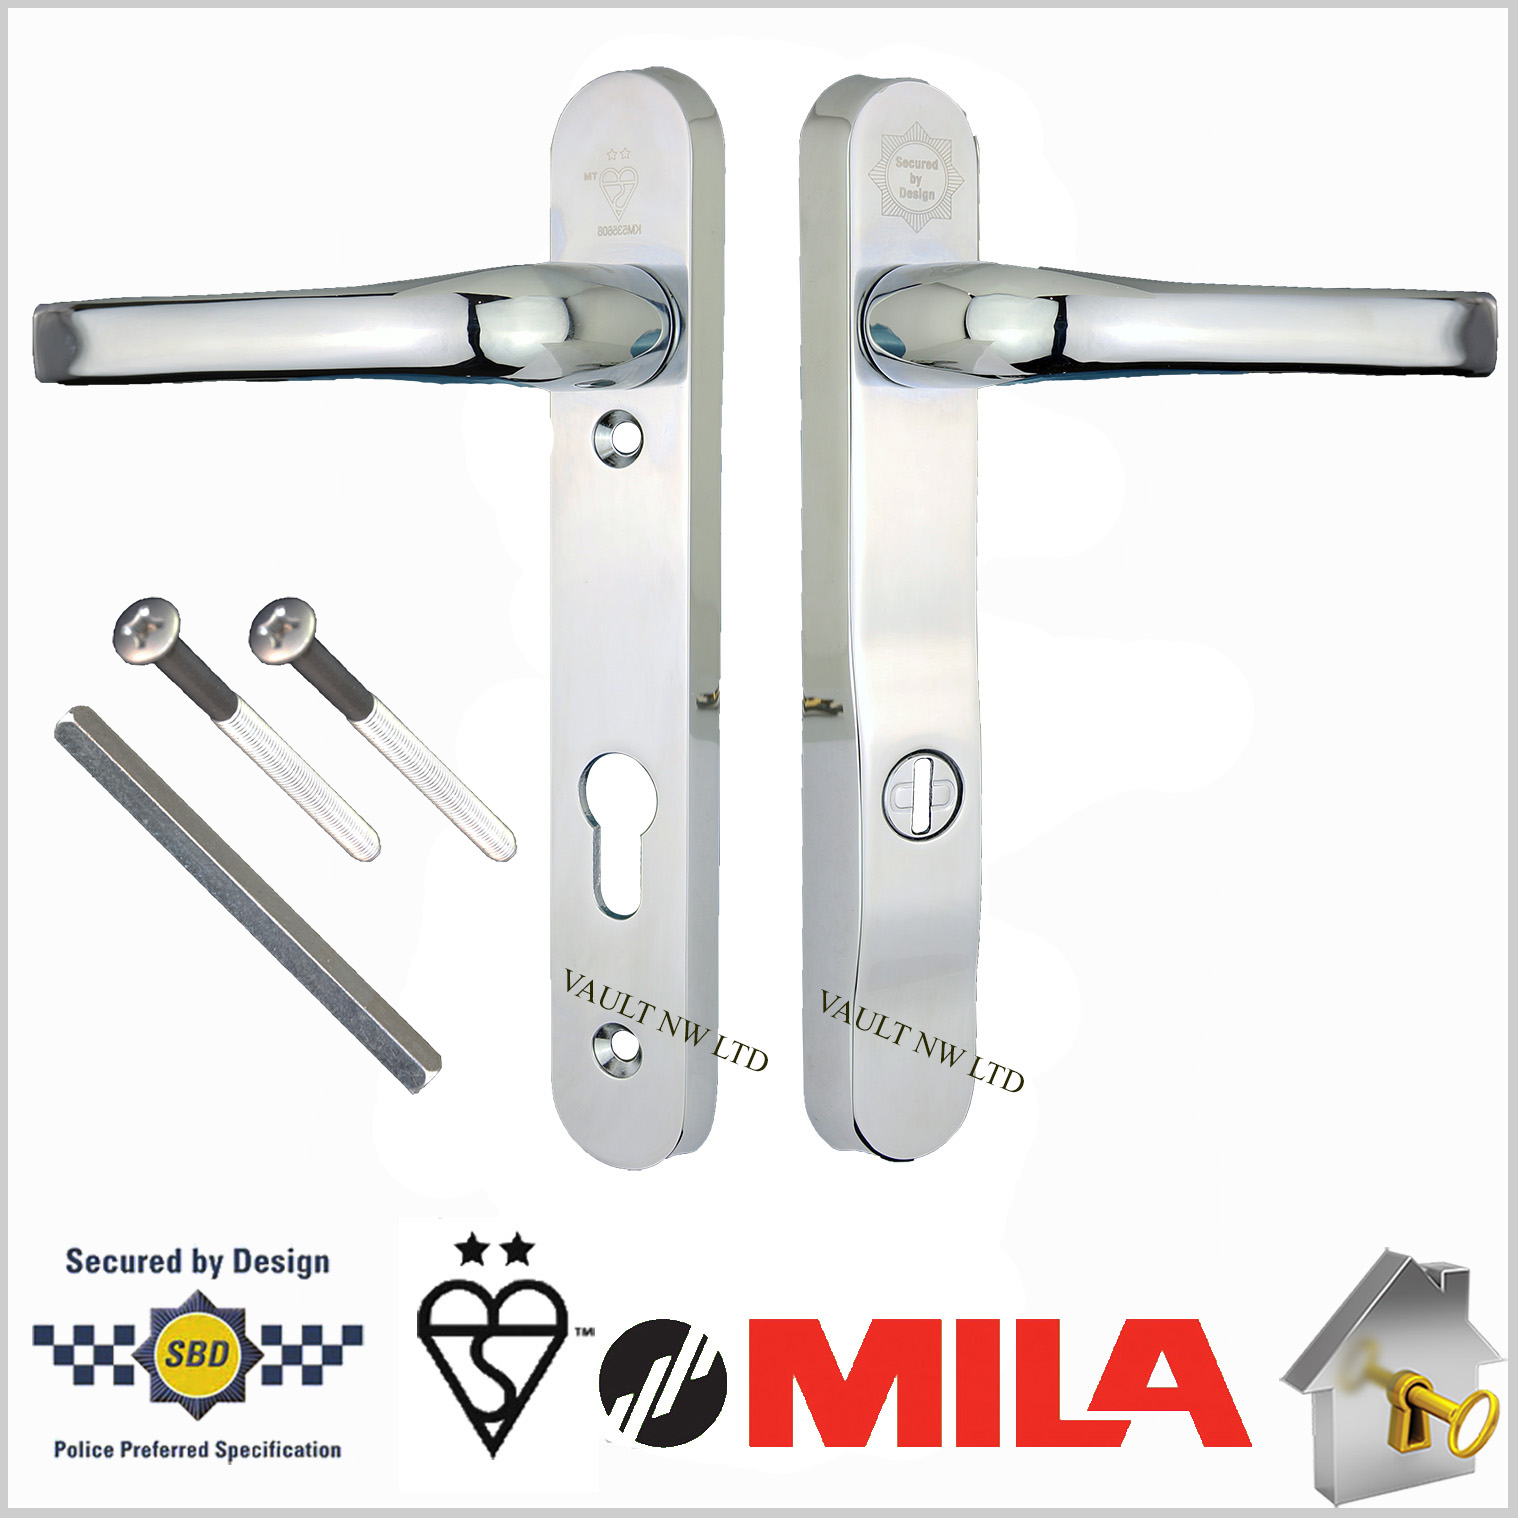 Mila Prosecure High Security Door Handles 220mm Backplate